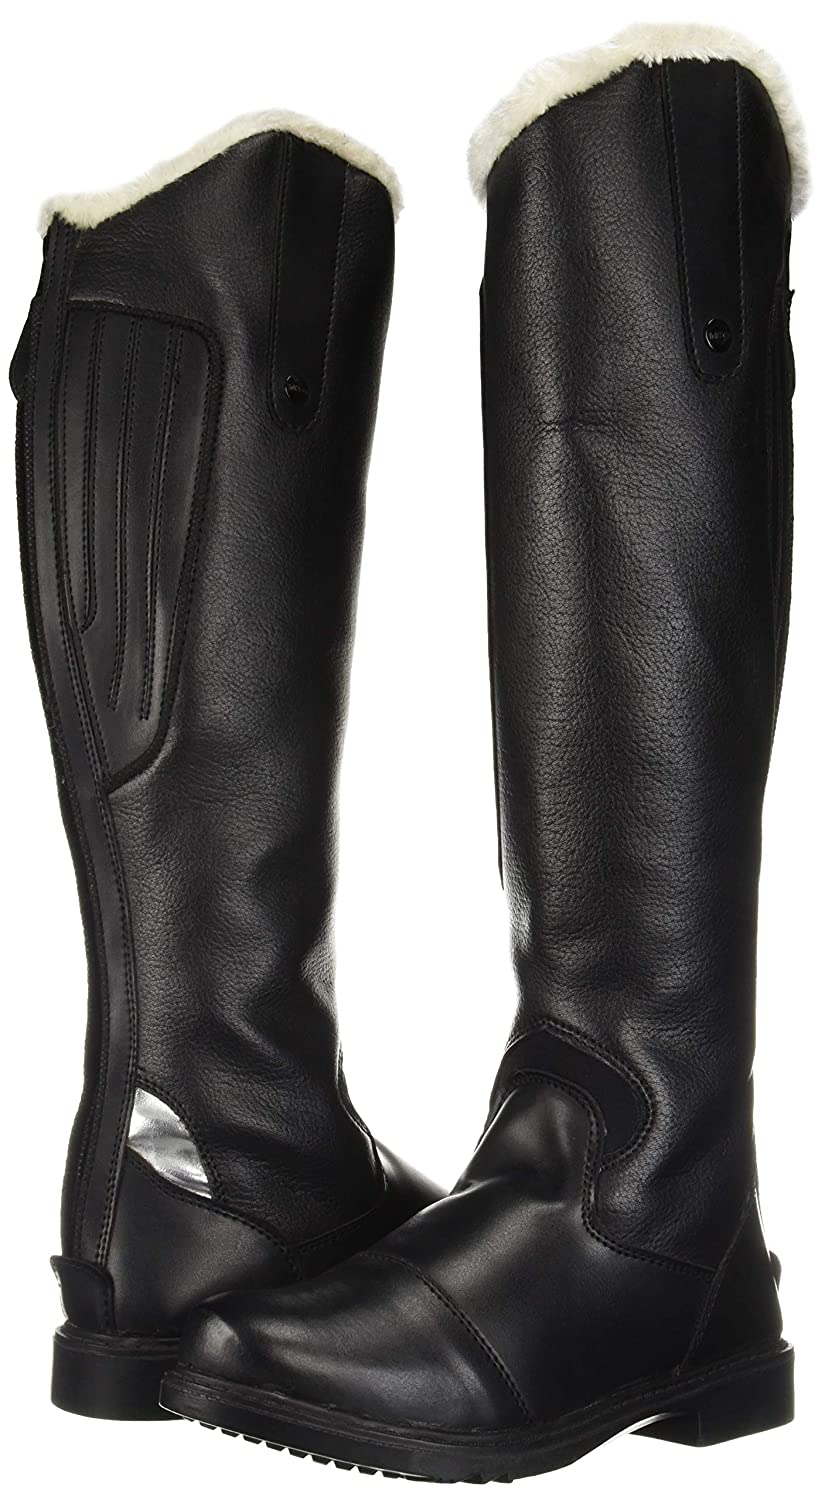 TuffRider Womens Tundra Fleece Lined Tall Boots in Synthetic Leather JPC Equestrian Sporting Goods 3060-P